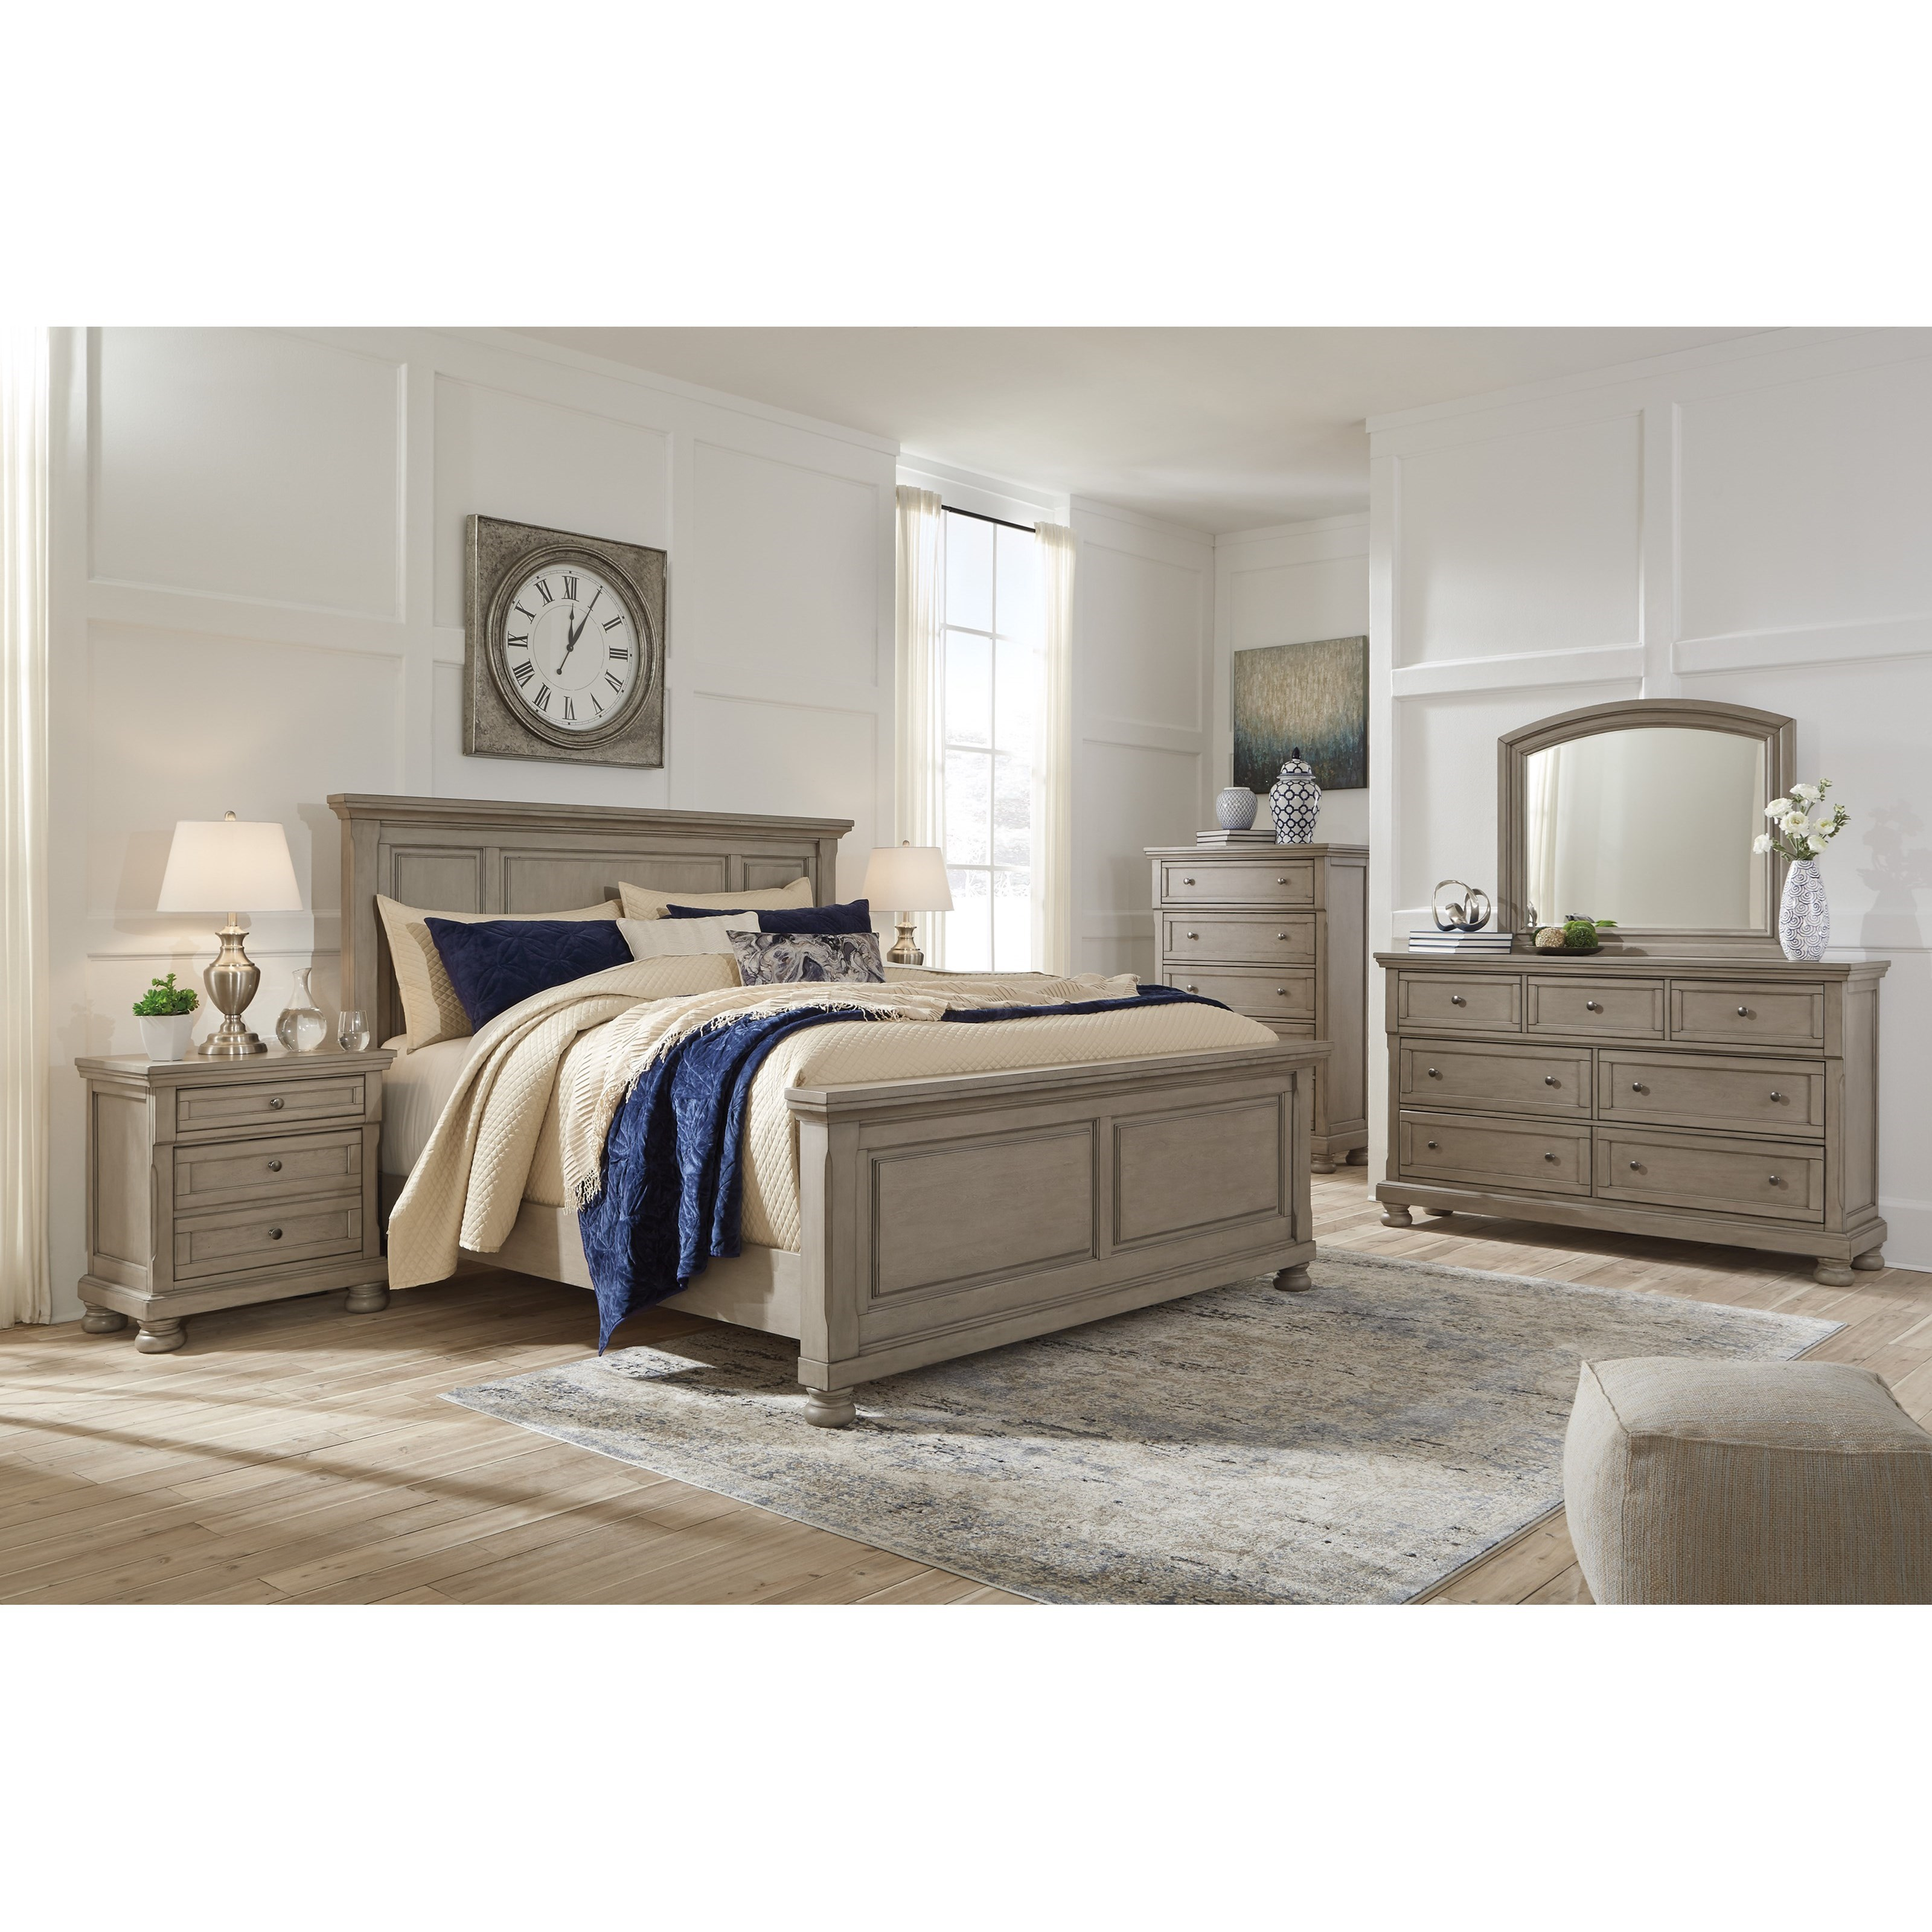 Lettner Queen Bedroom Group by Signature Design by Ashley at Suburban Furniture